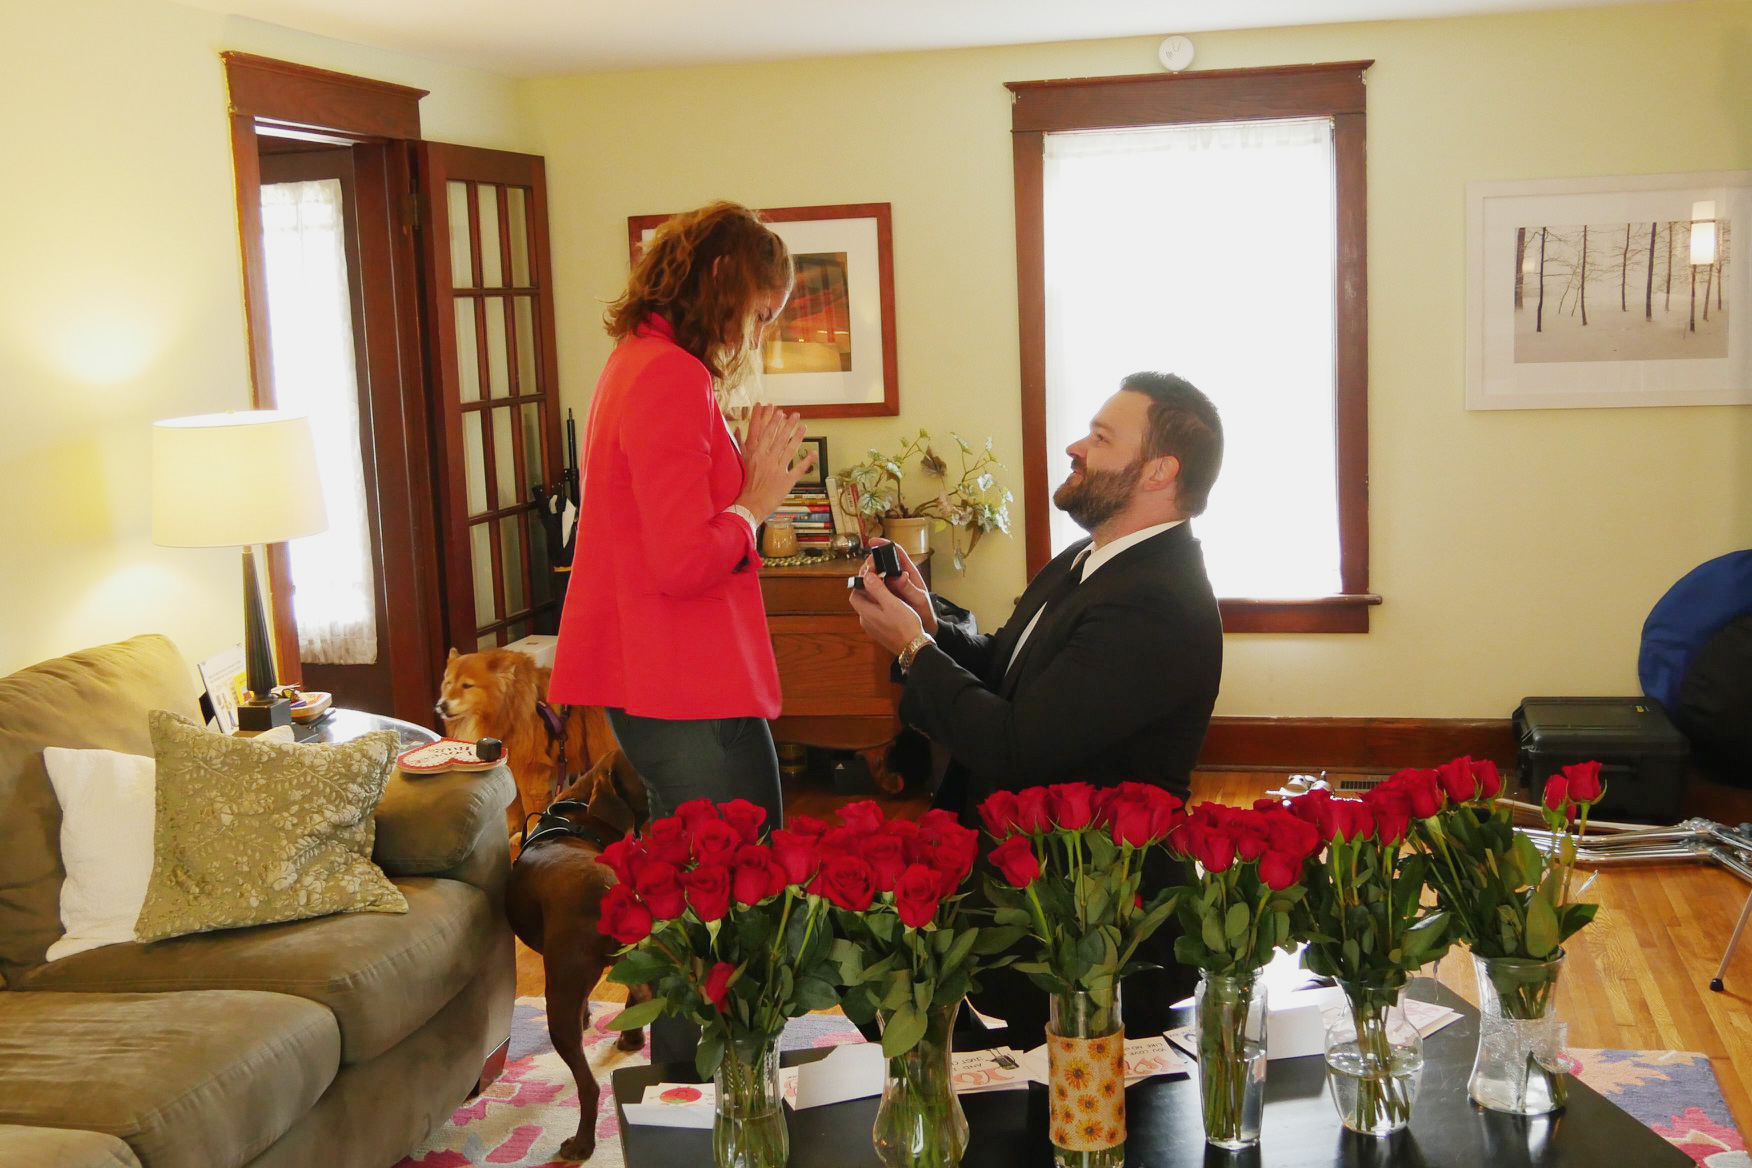 Adam Stultz Proposes to Kelly Heck